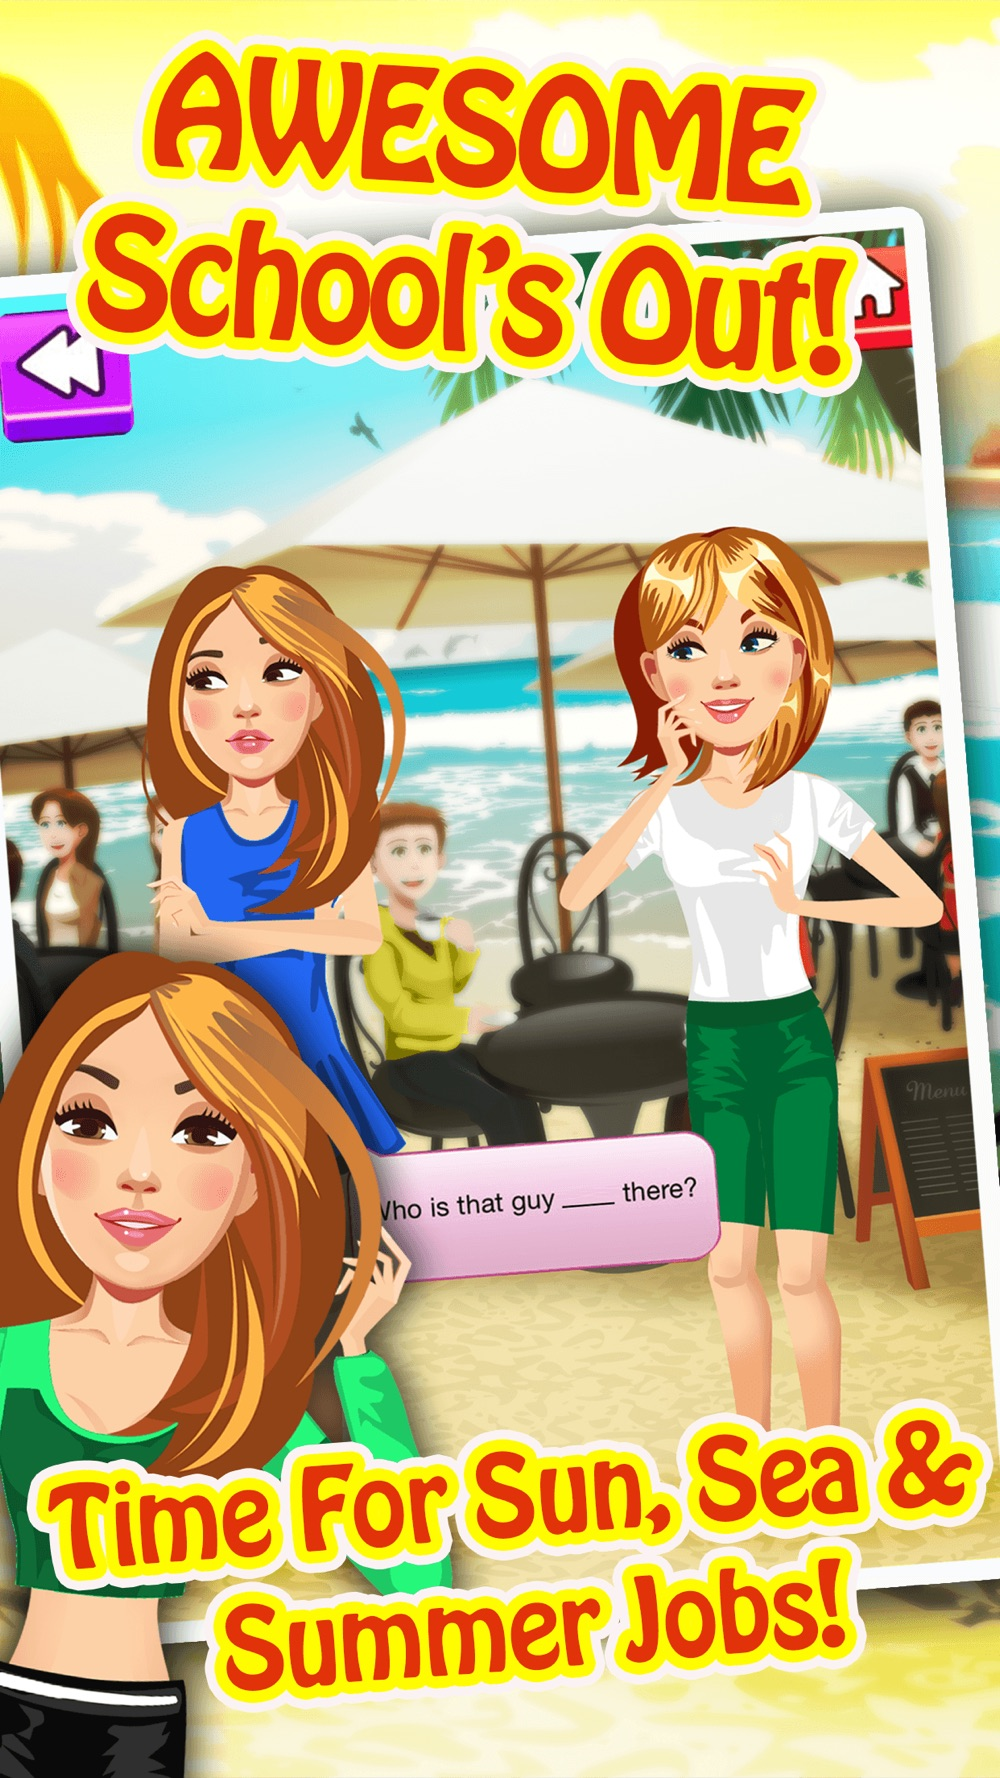 My Teen Life Summer Job Episode Game – The Big Fashion Makeover Cover Up Interactive Story Free hack tool